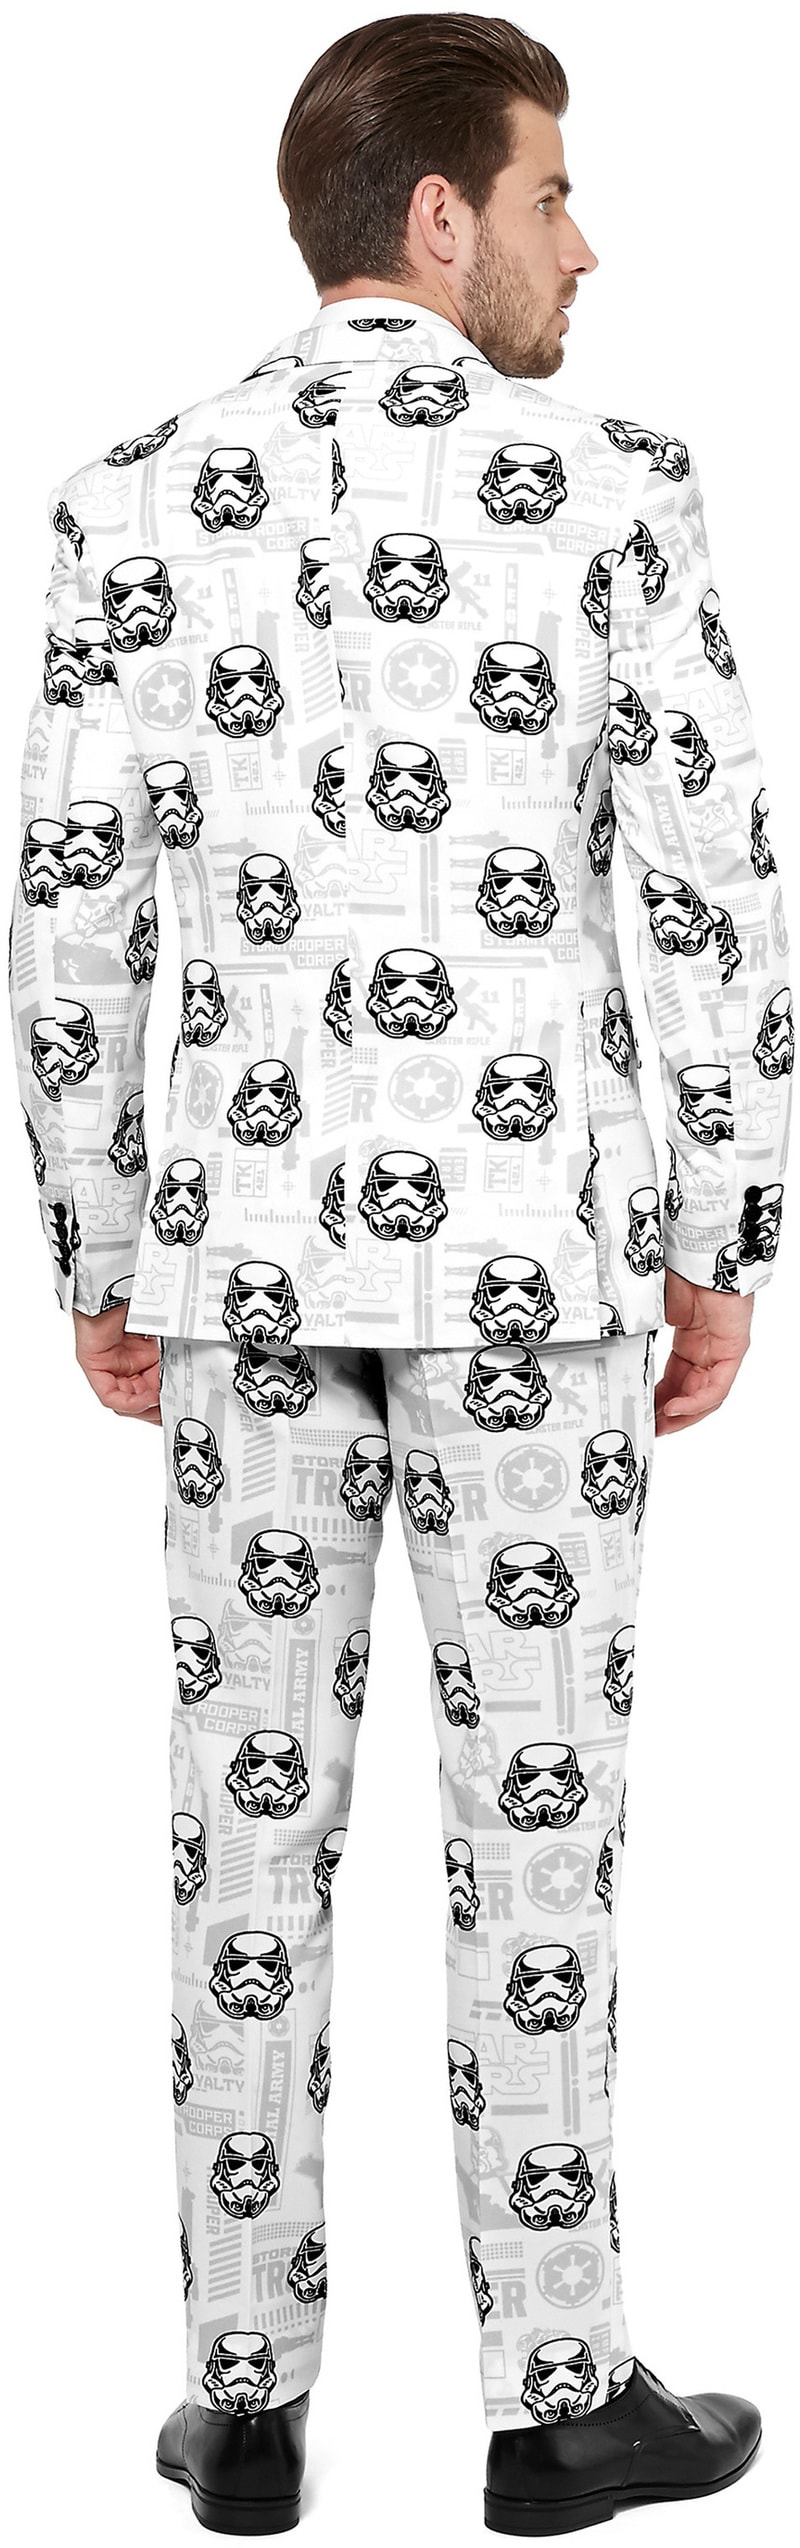 OppoSuits Stormtrooper Suit photo 1